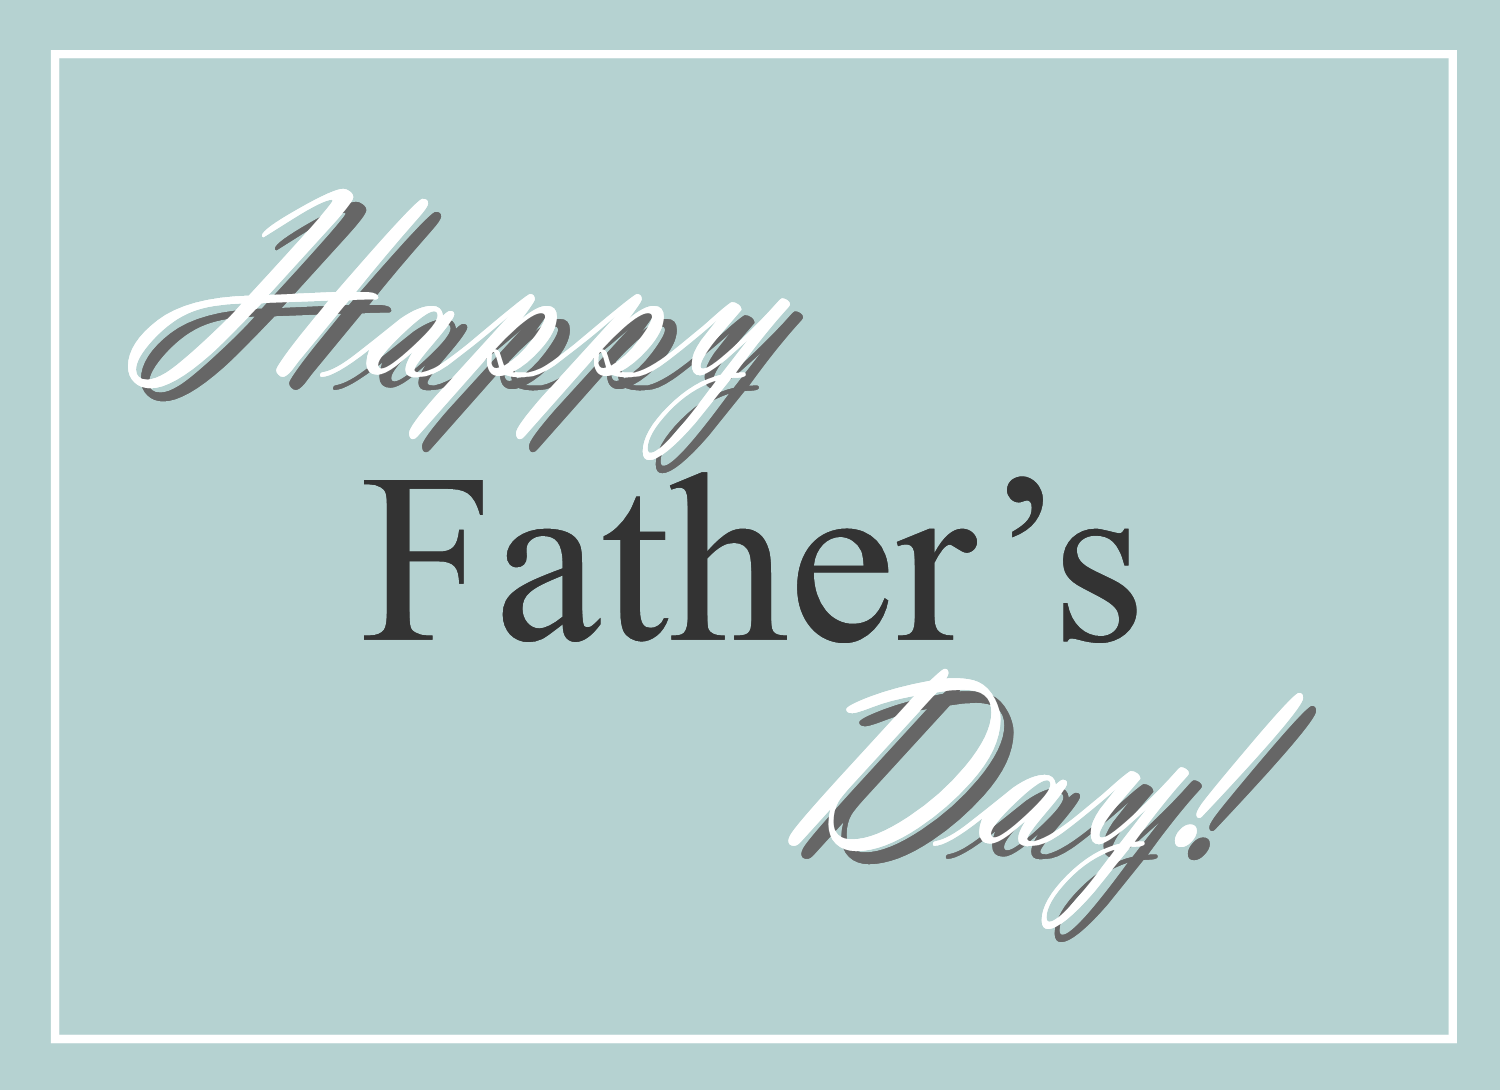 Free Clipart N Images: Happy Father's Day Clip Art Greeting.